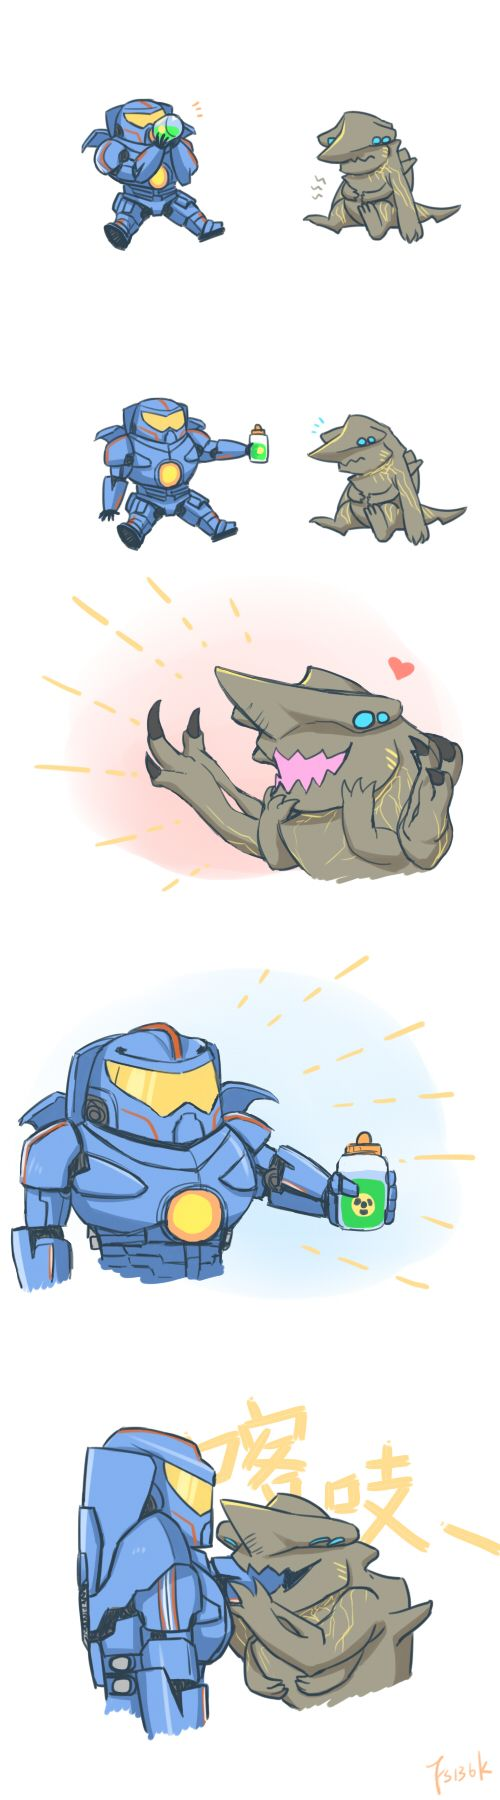 Awwwww. Friends forever Jaegers and Kaiju.